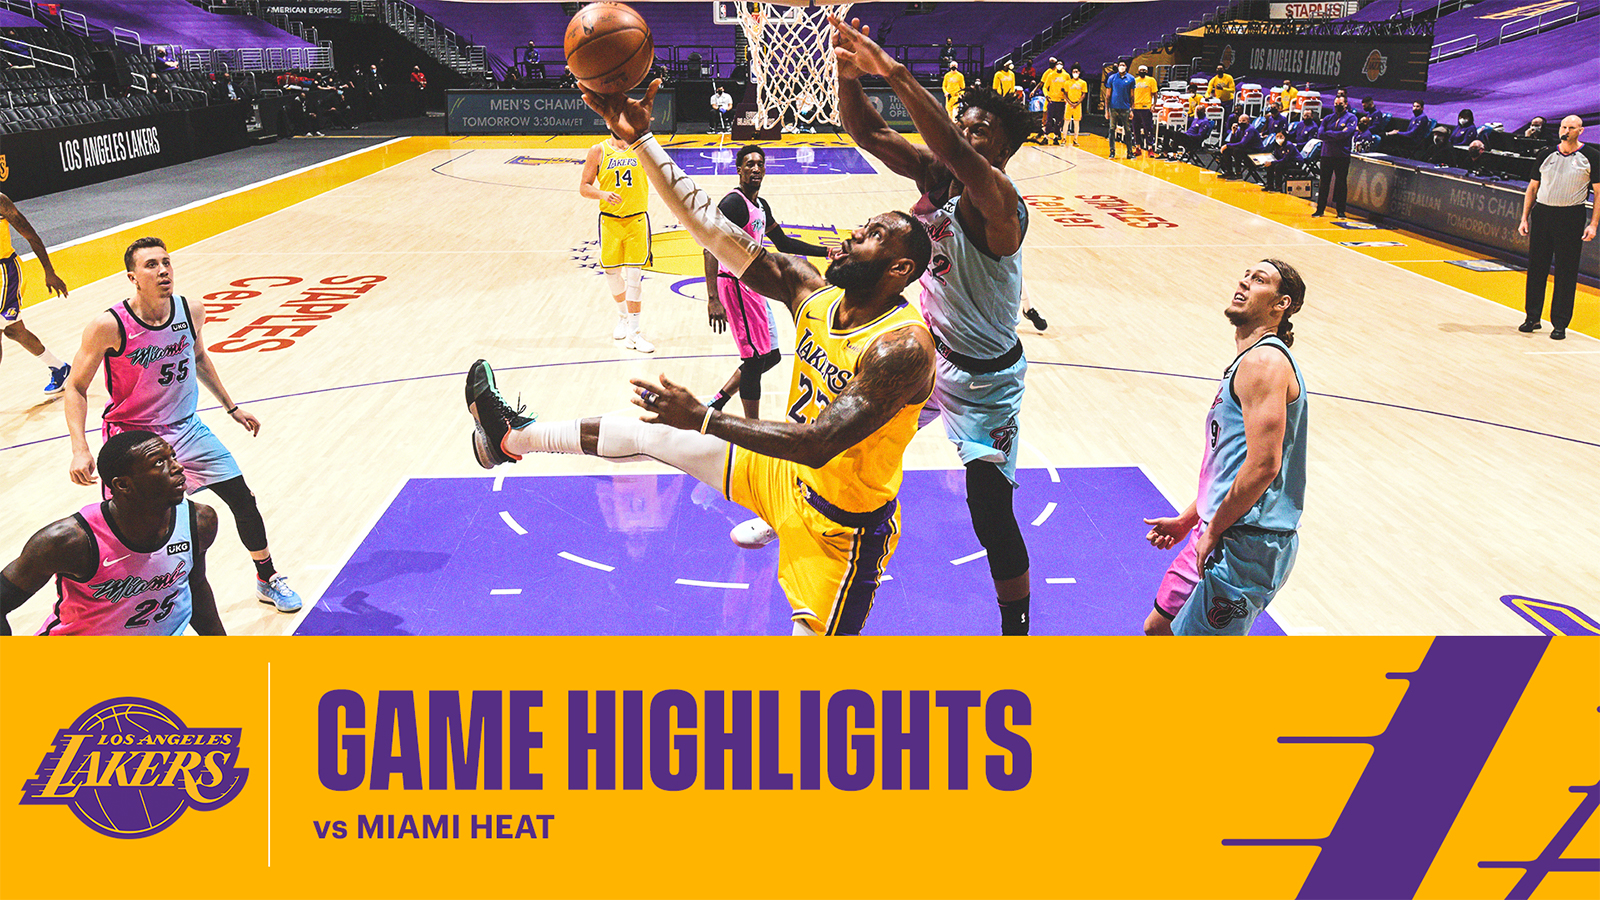 HIGHLIGHTS | LeBron James (19 pts, 9 reb, 9 ast) vs Miami Heat